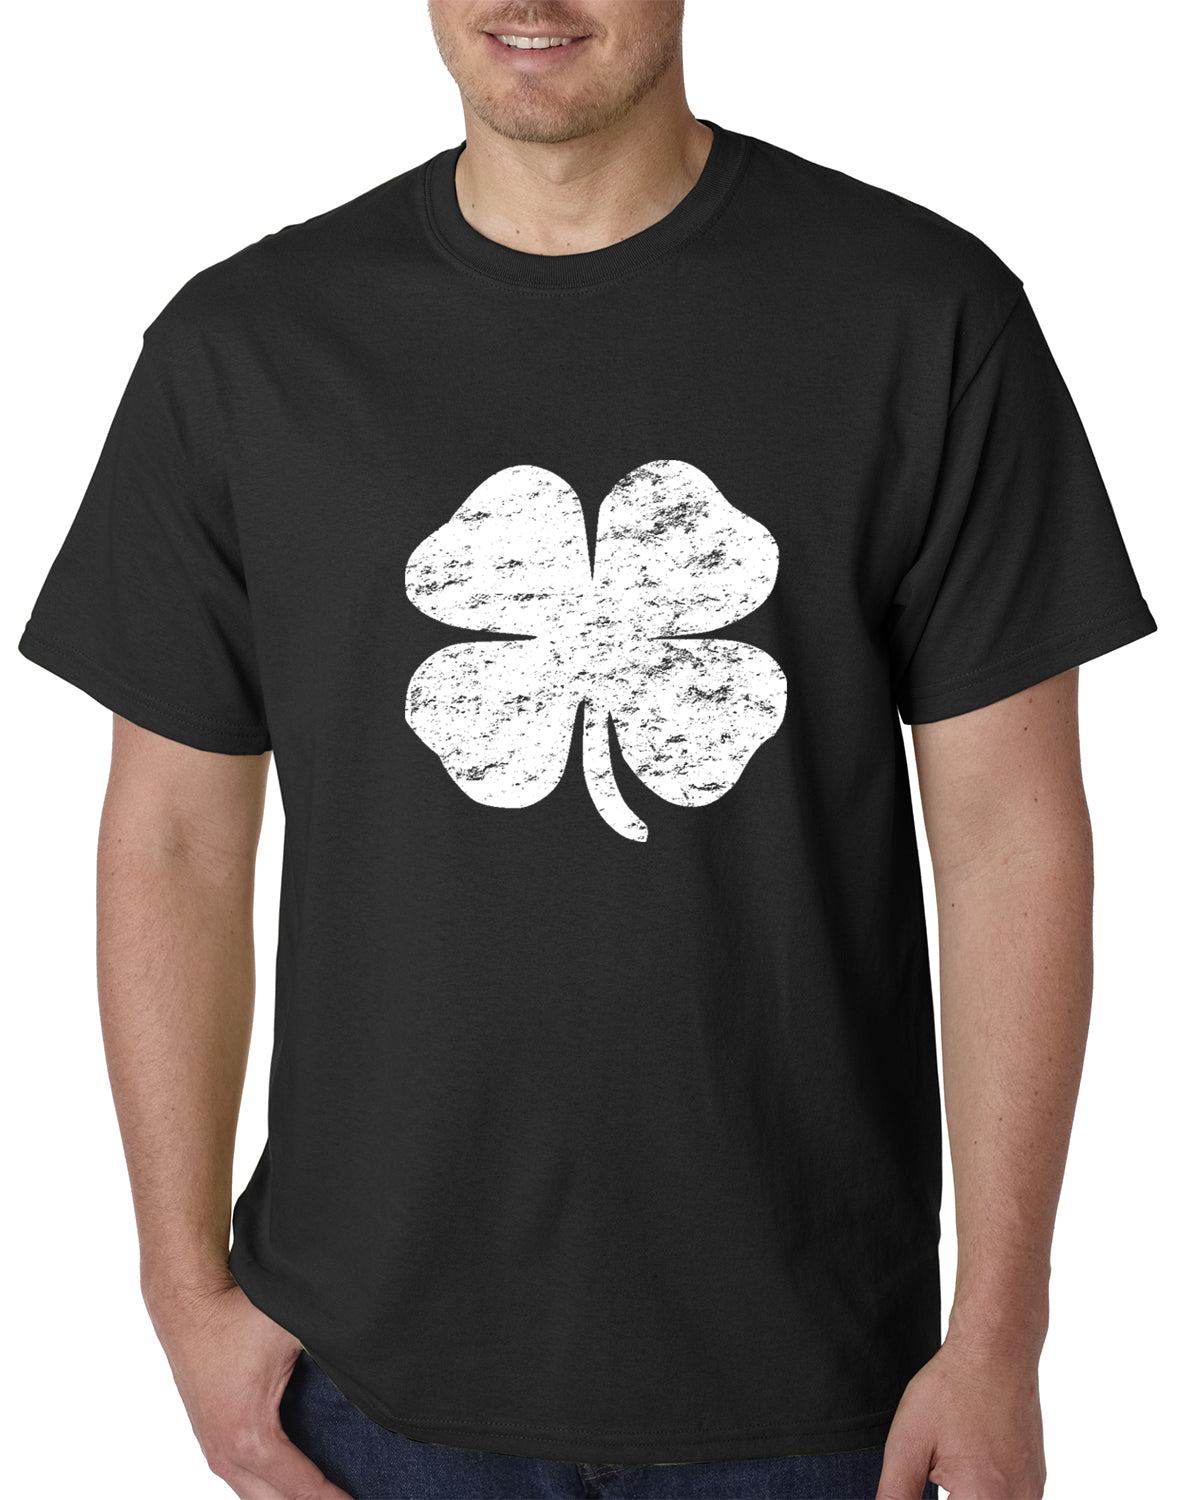 St. Patrick's Day Vintage Distressed 4 Leaf Clover Mens T-shirt